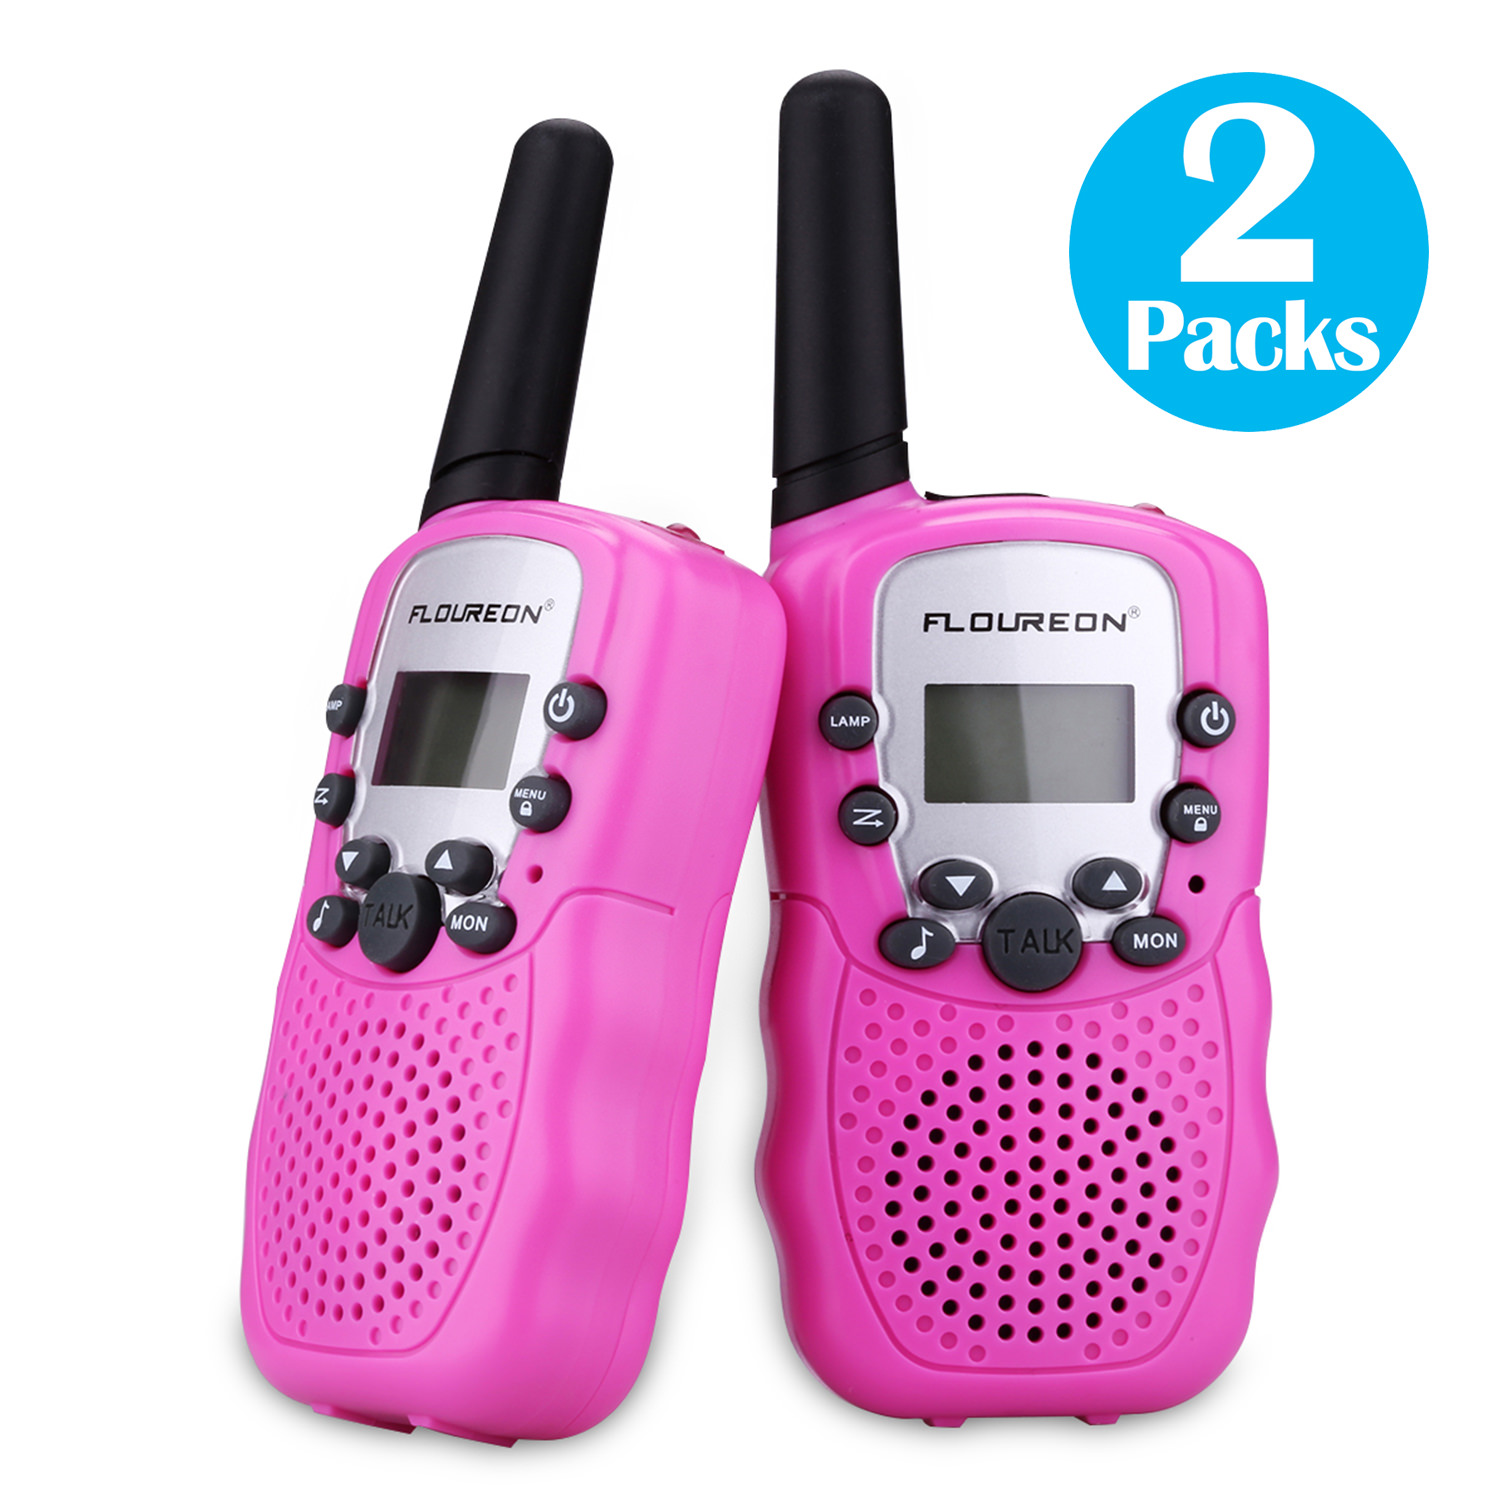 2 x FLOUREON Two Way Radio UHF462-467MHz Walkie Talkie Set 5KM Range Interphone